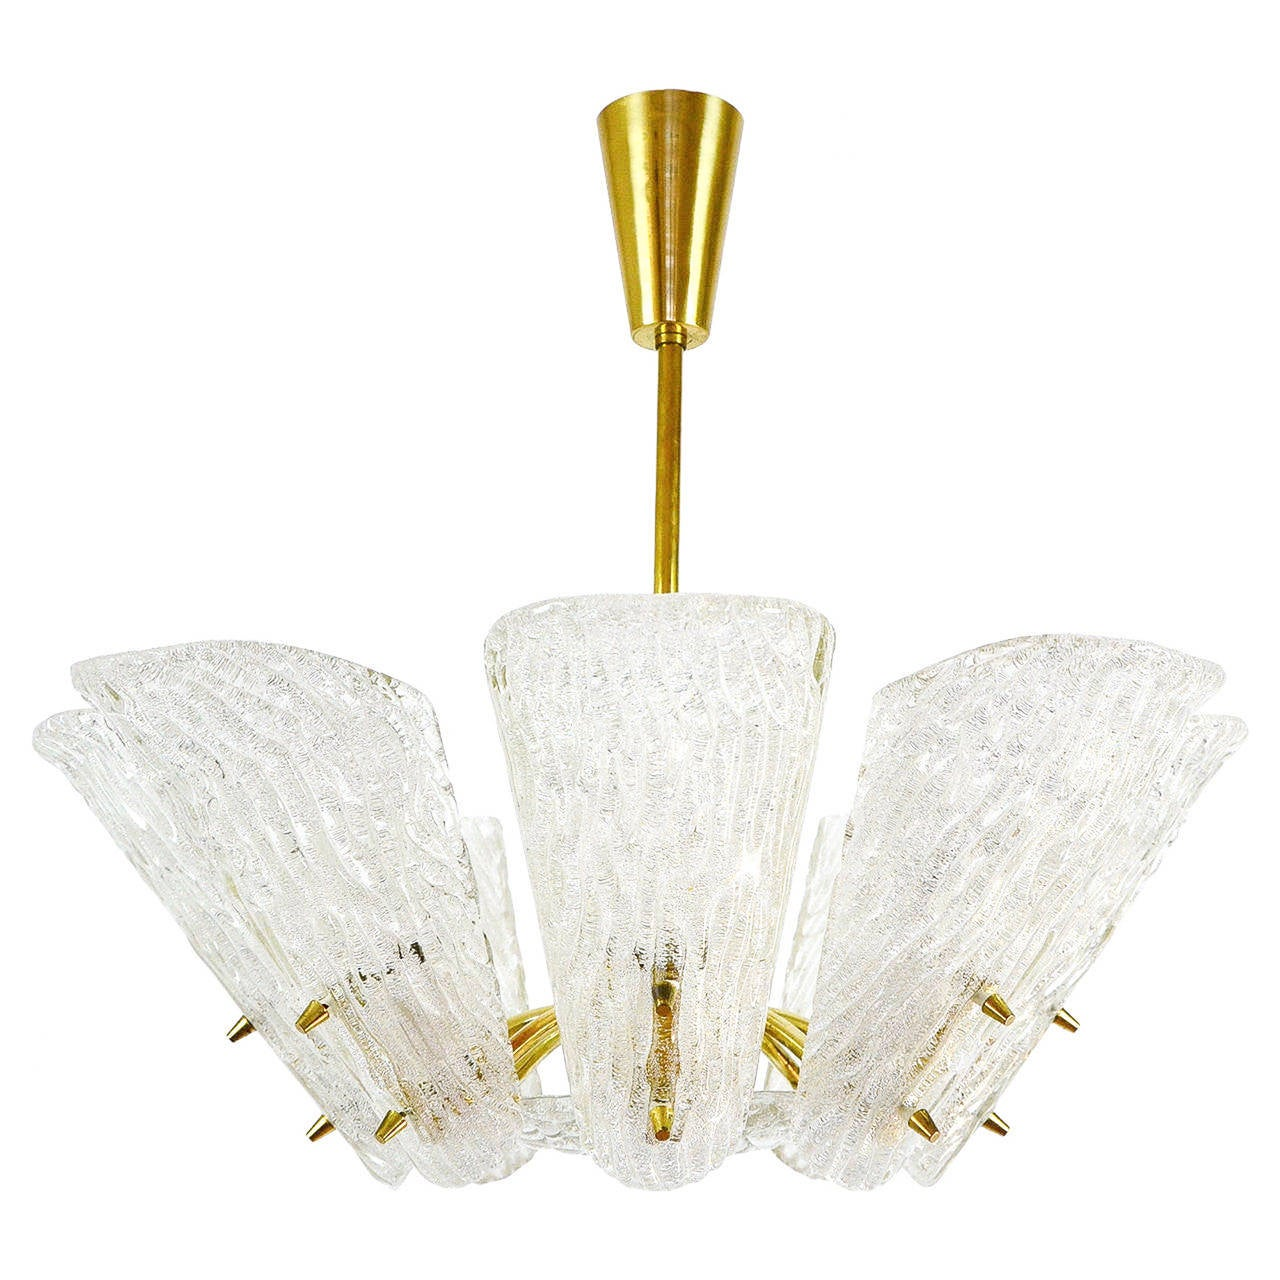 Brass and Textured Glass Eight-Arm Chandelier by Kalmar, 1950s